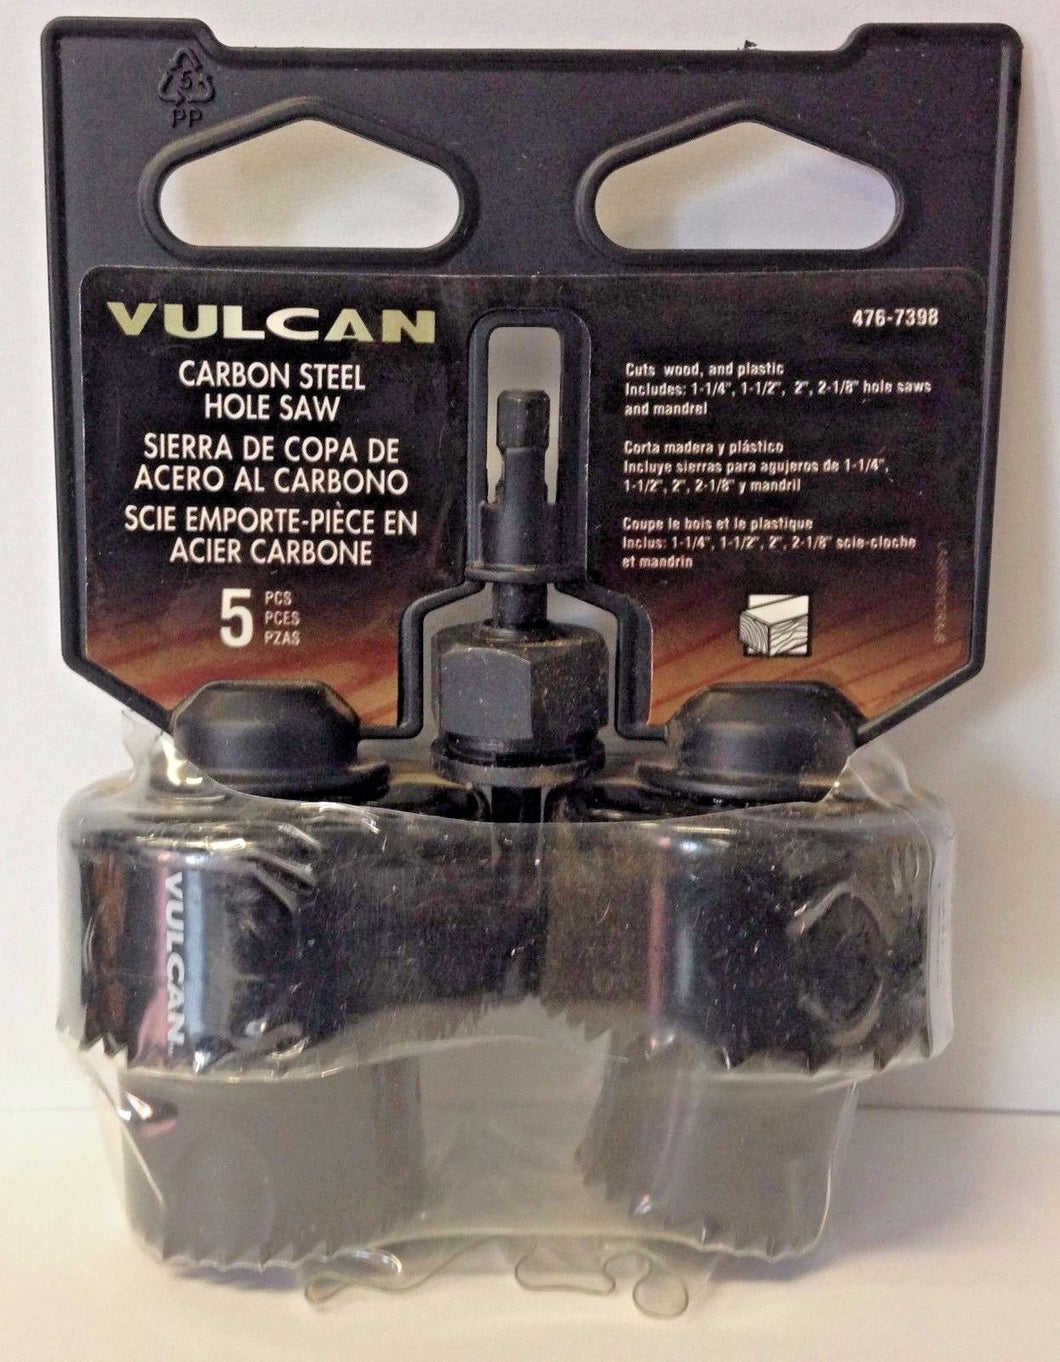 Vulcan 988091OR 5 Piece Hole Saw Set 1-1/4